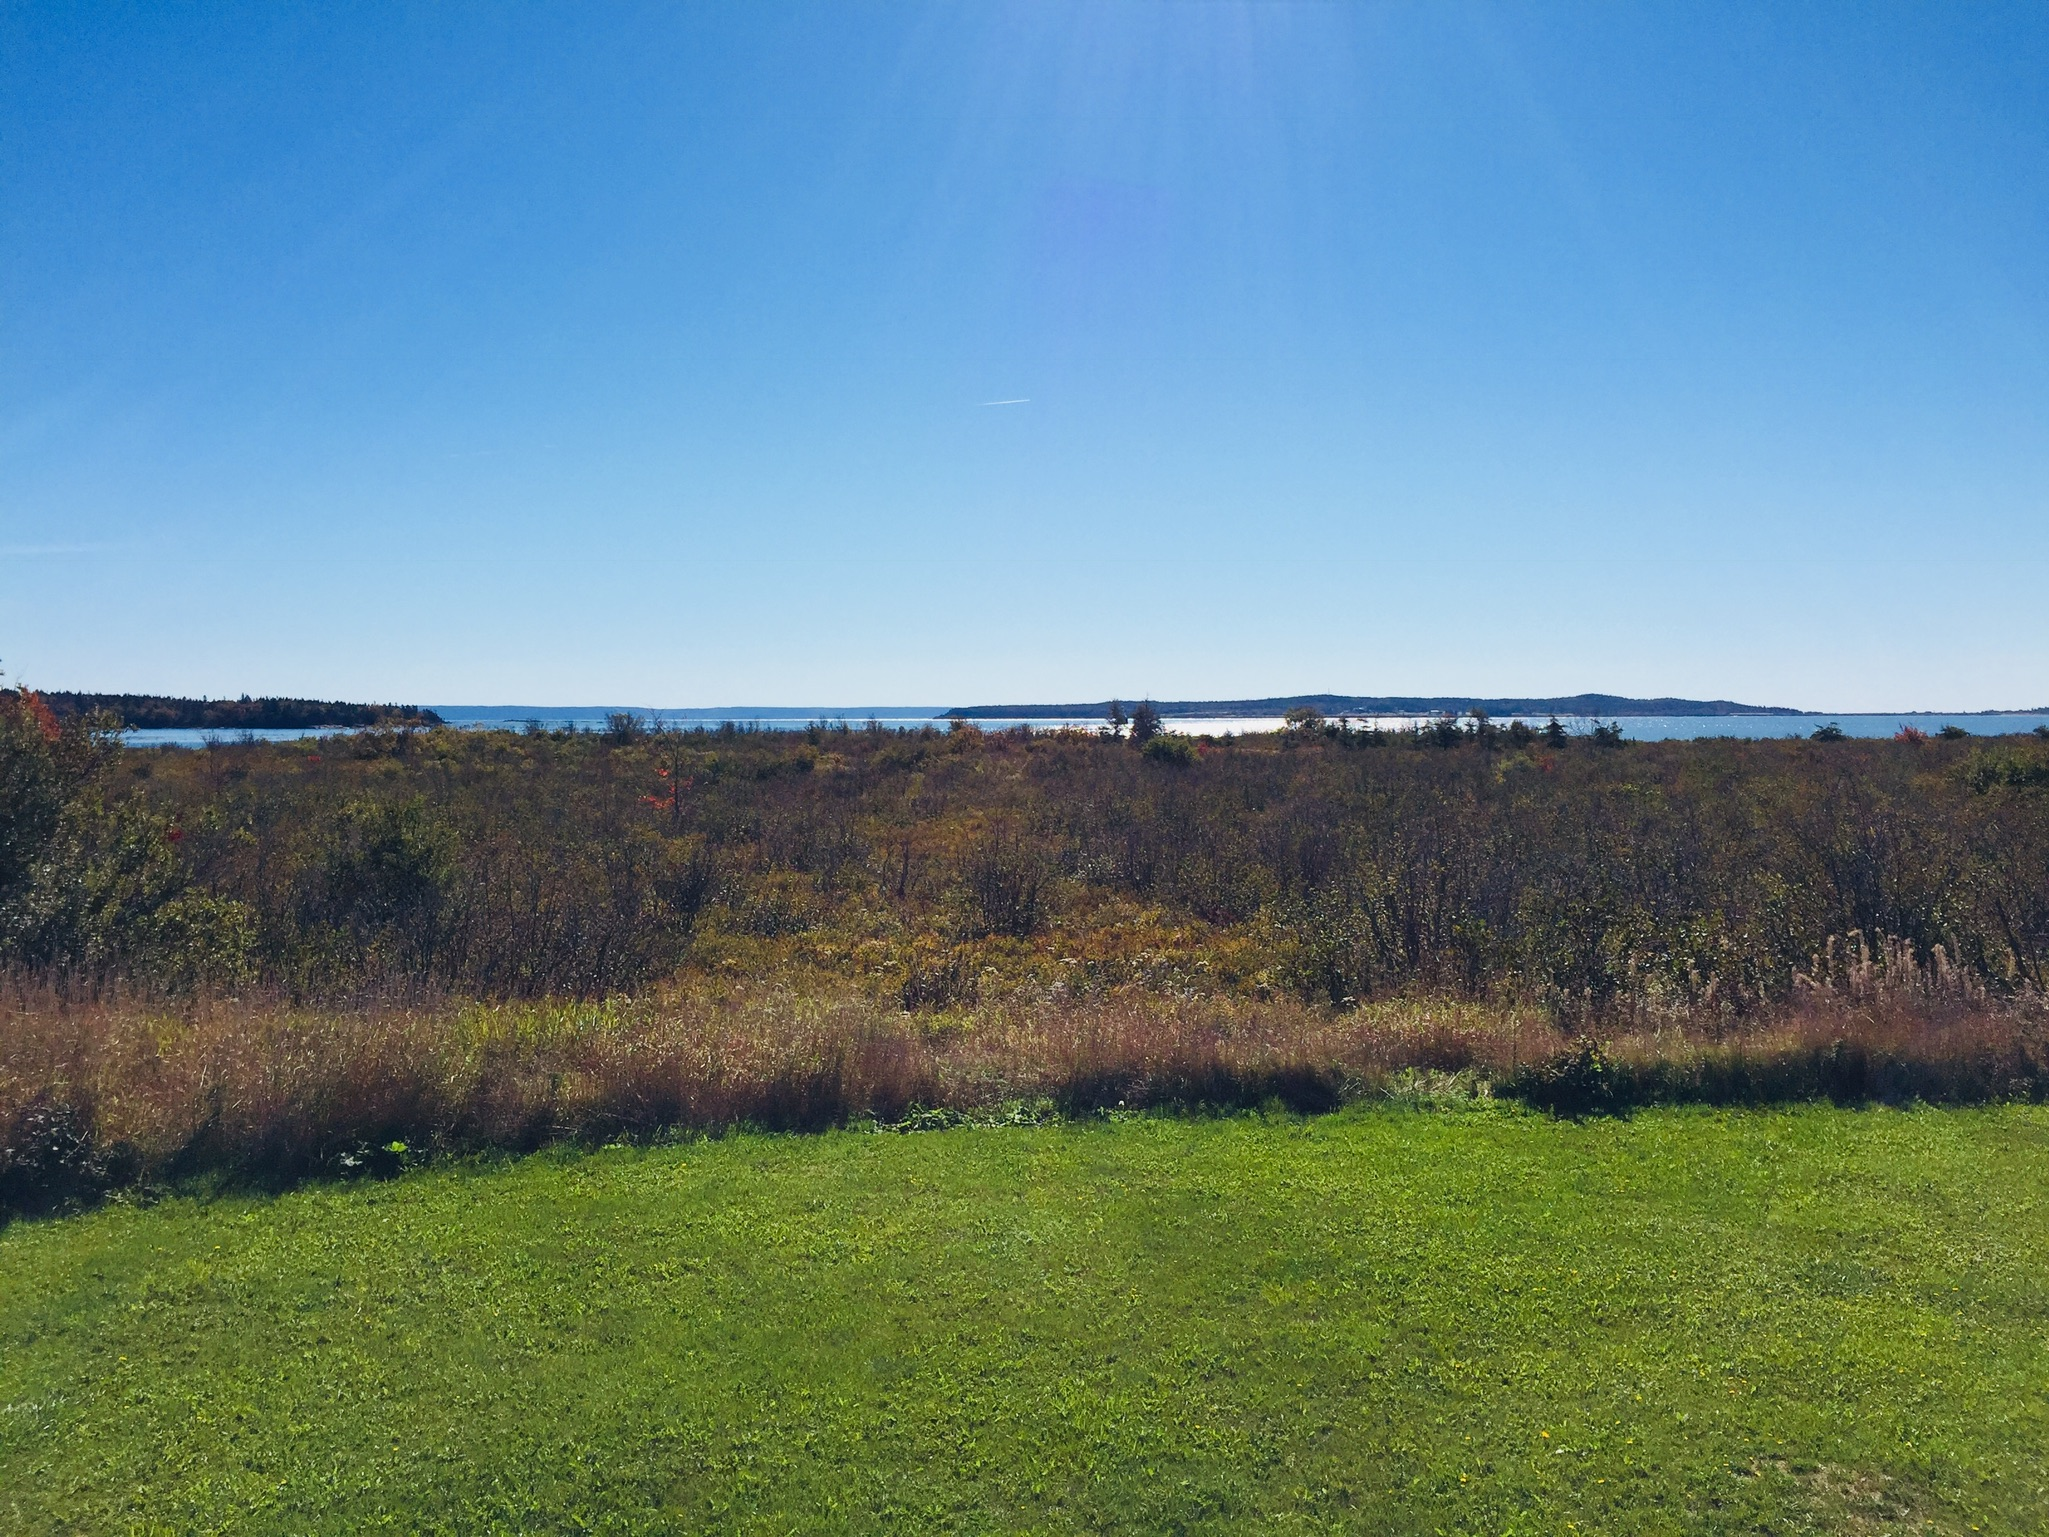 Mowry Beach conservation area from the playground of Lubec Consolidated School